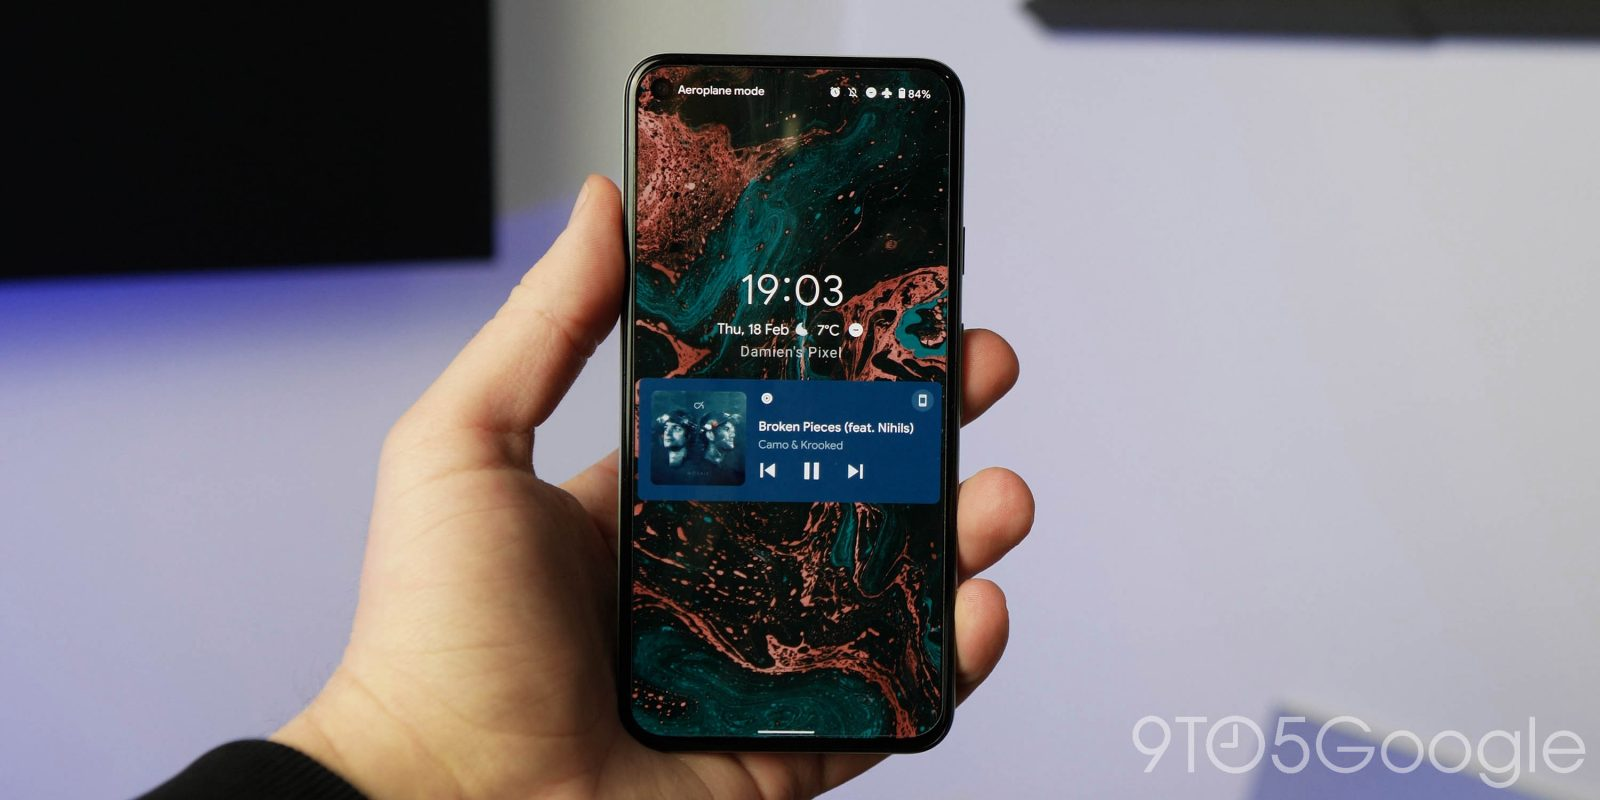 Android 12 DP1: Lockscreen and notification shade media player gets minor UI redesign